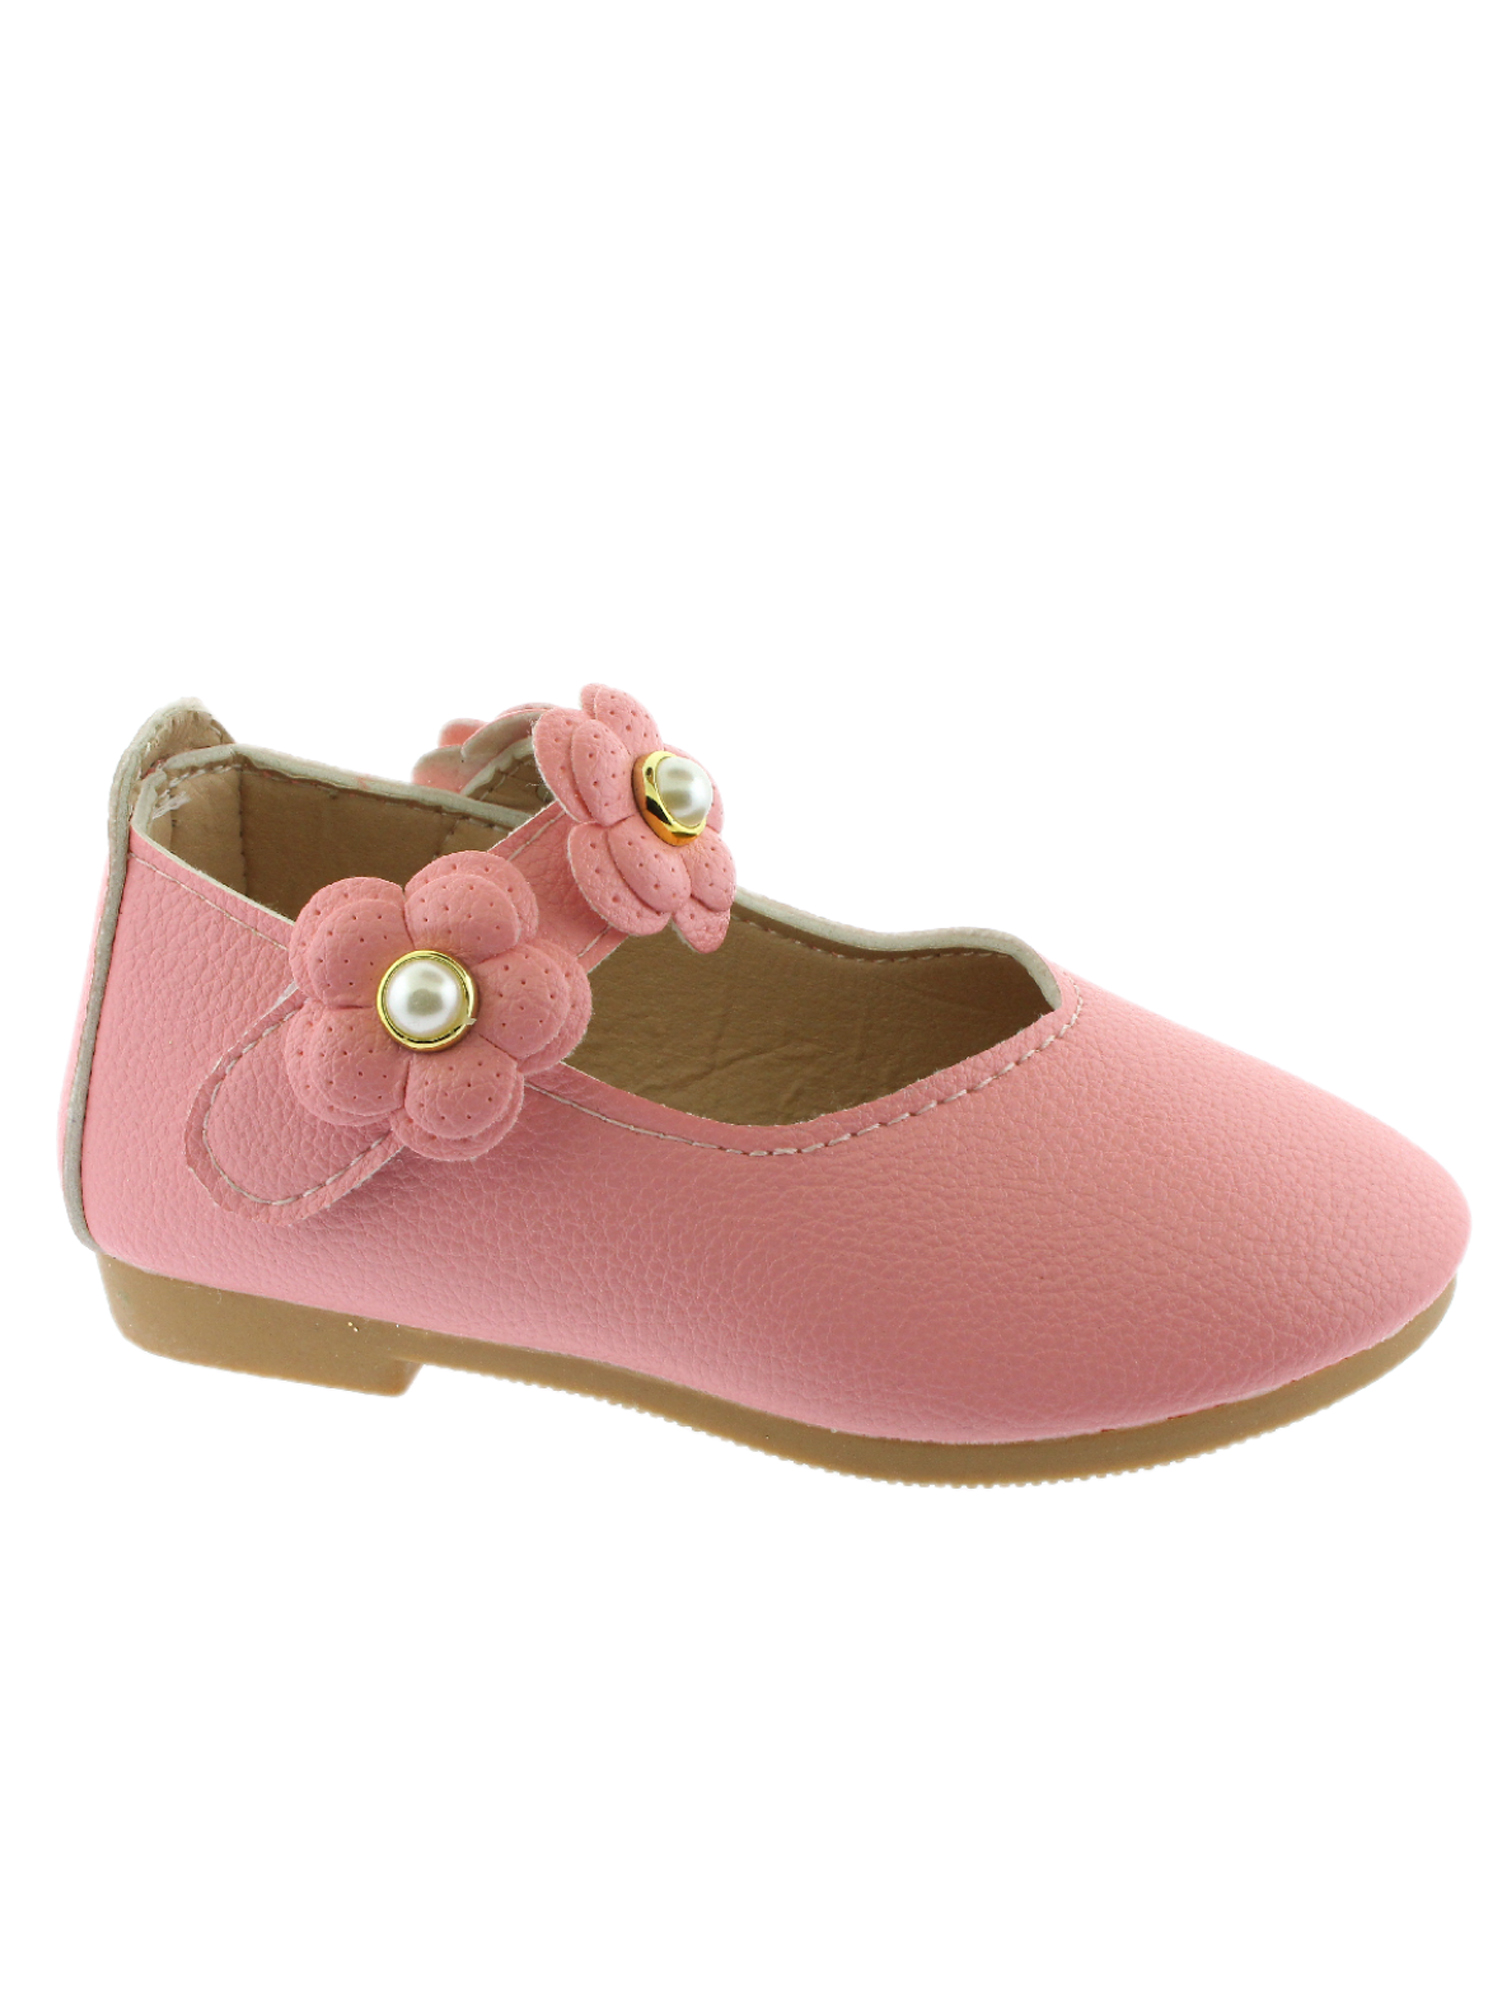 Kate Girls Pink Flower Pearl Strap Mary Jane Shoes